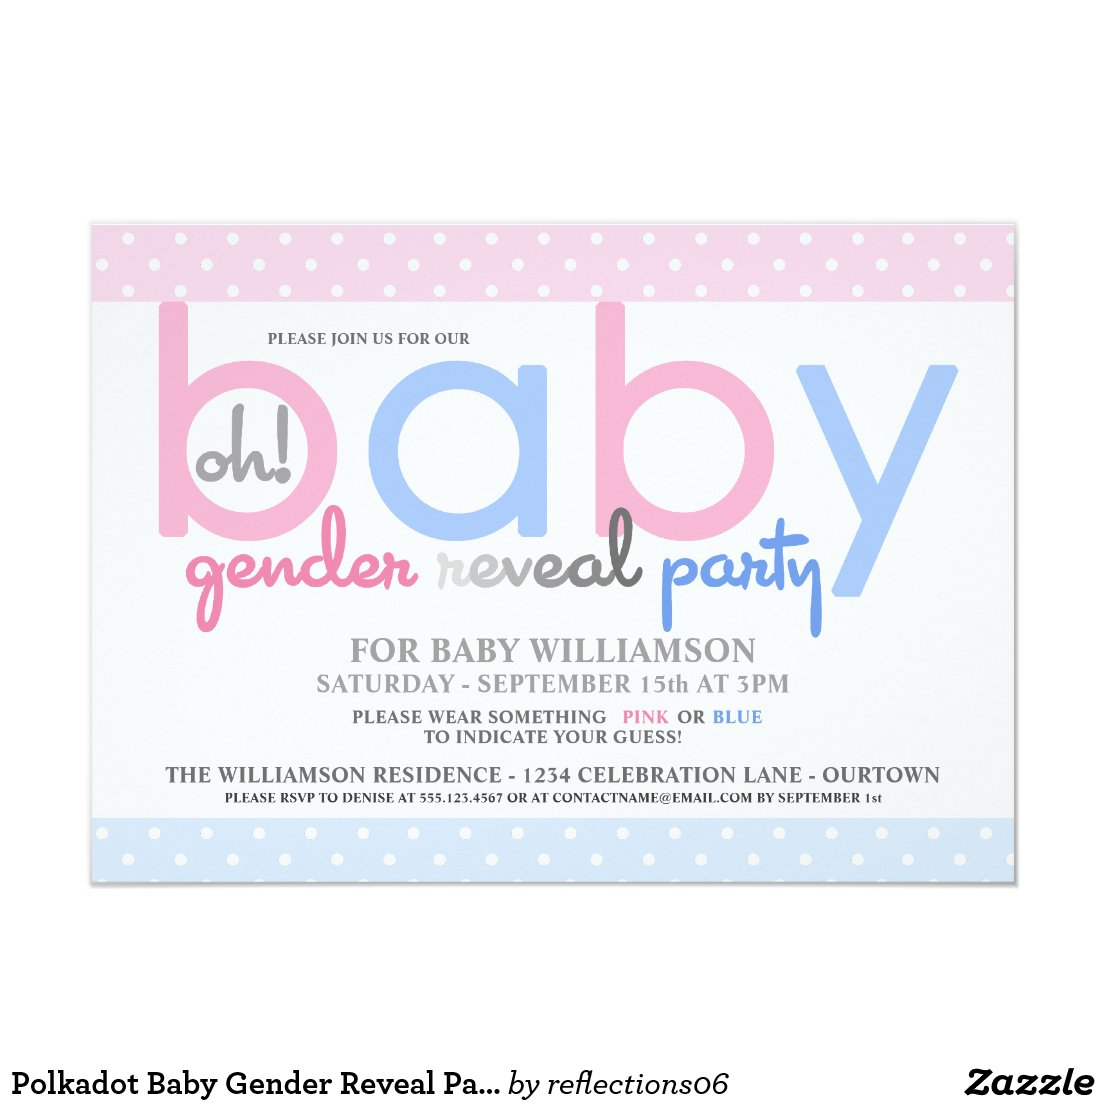 Polkadot Baby Gender Reveal Party Invitation